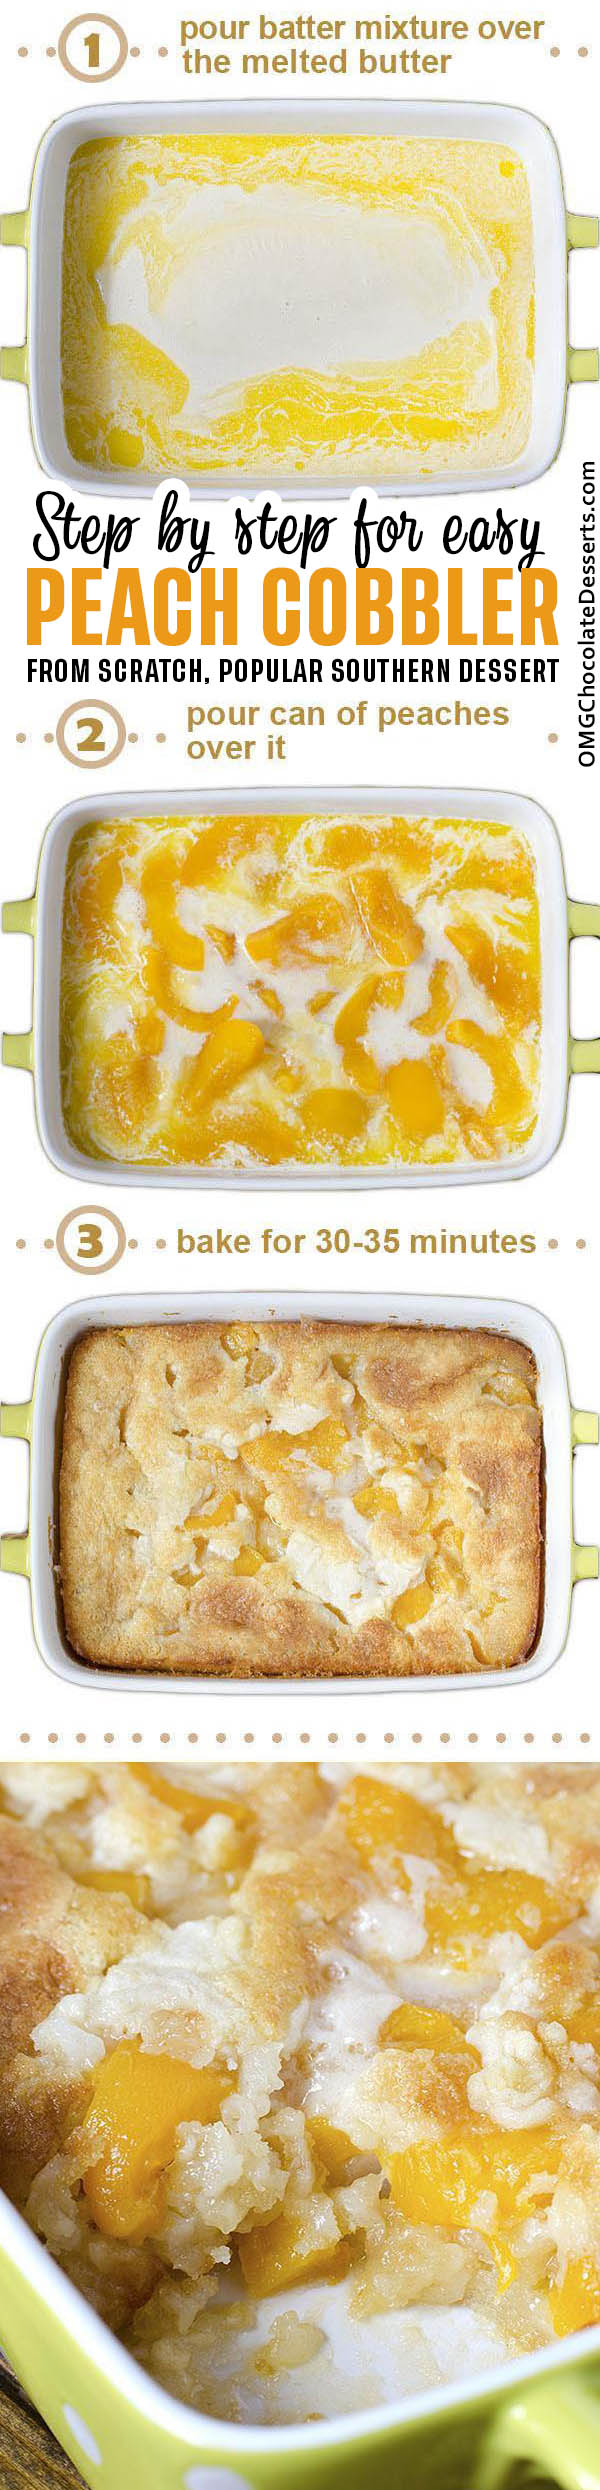 Step by step images for making peach cobbler.